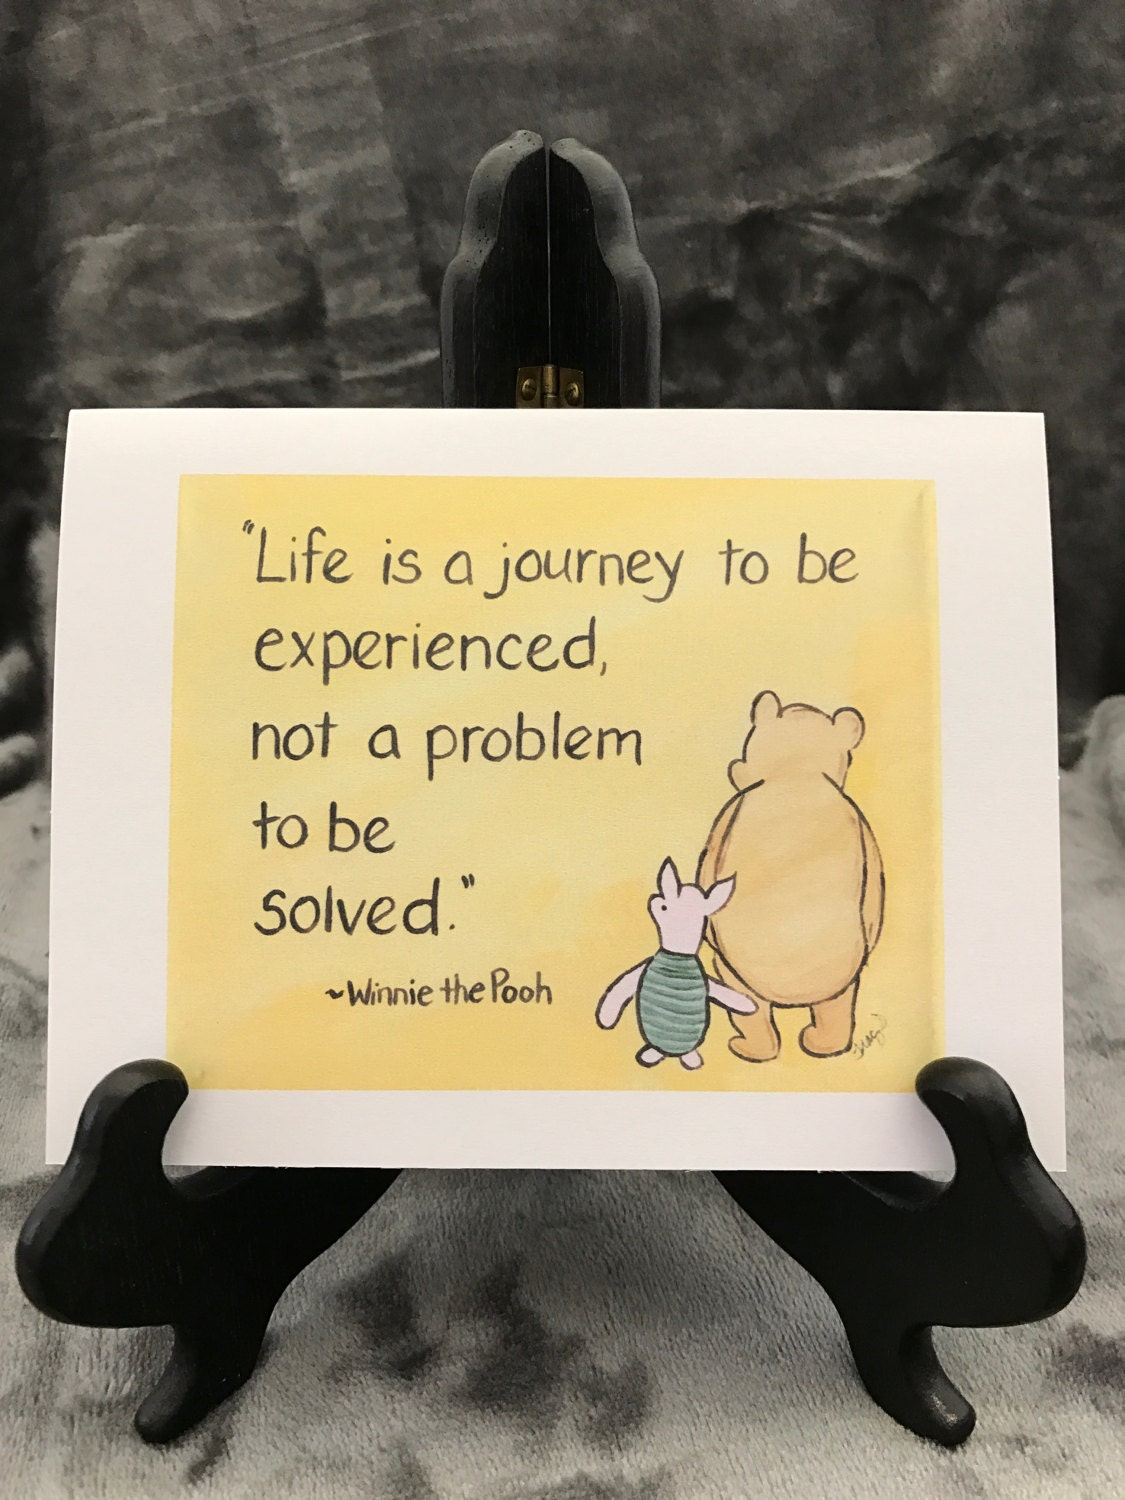 Winnie The Pooh Quotes About Life Encouragement Card Life Journey Meaning Of Life Is A Journey